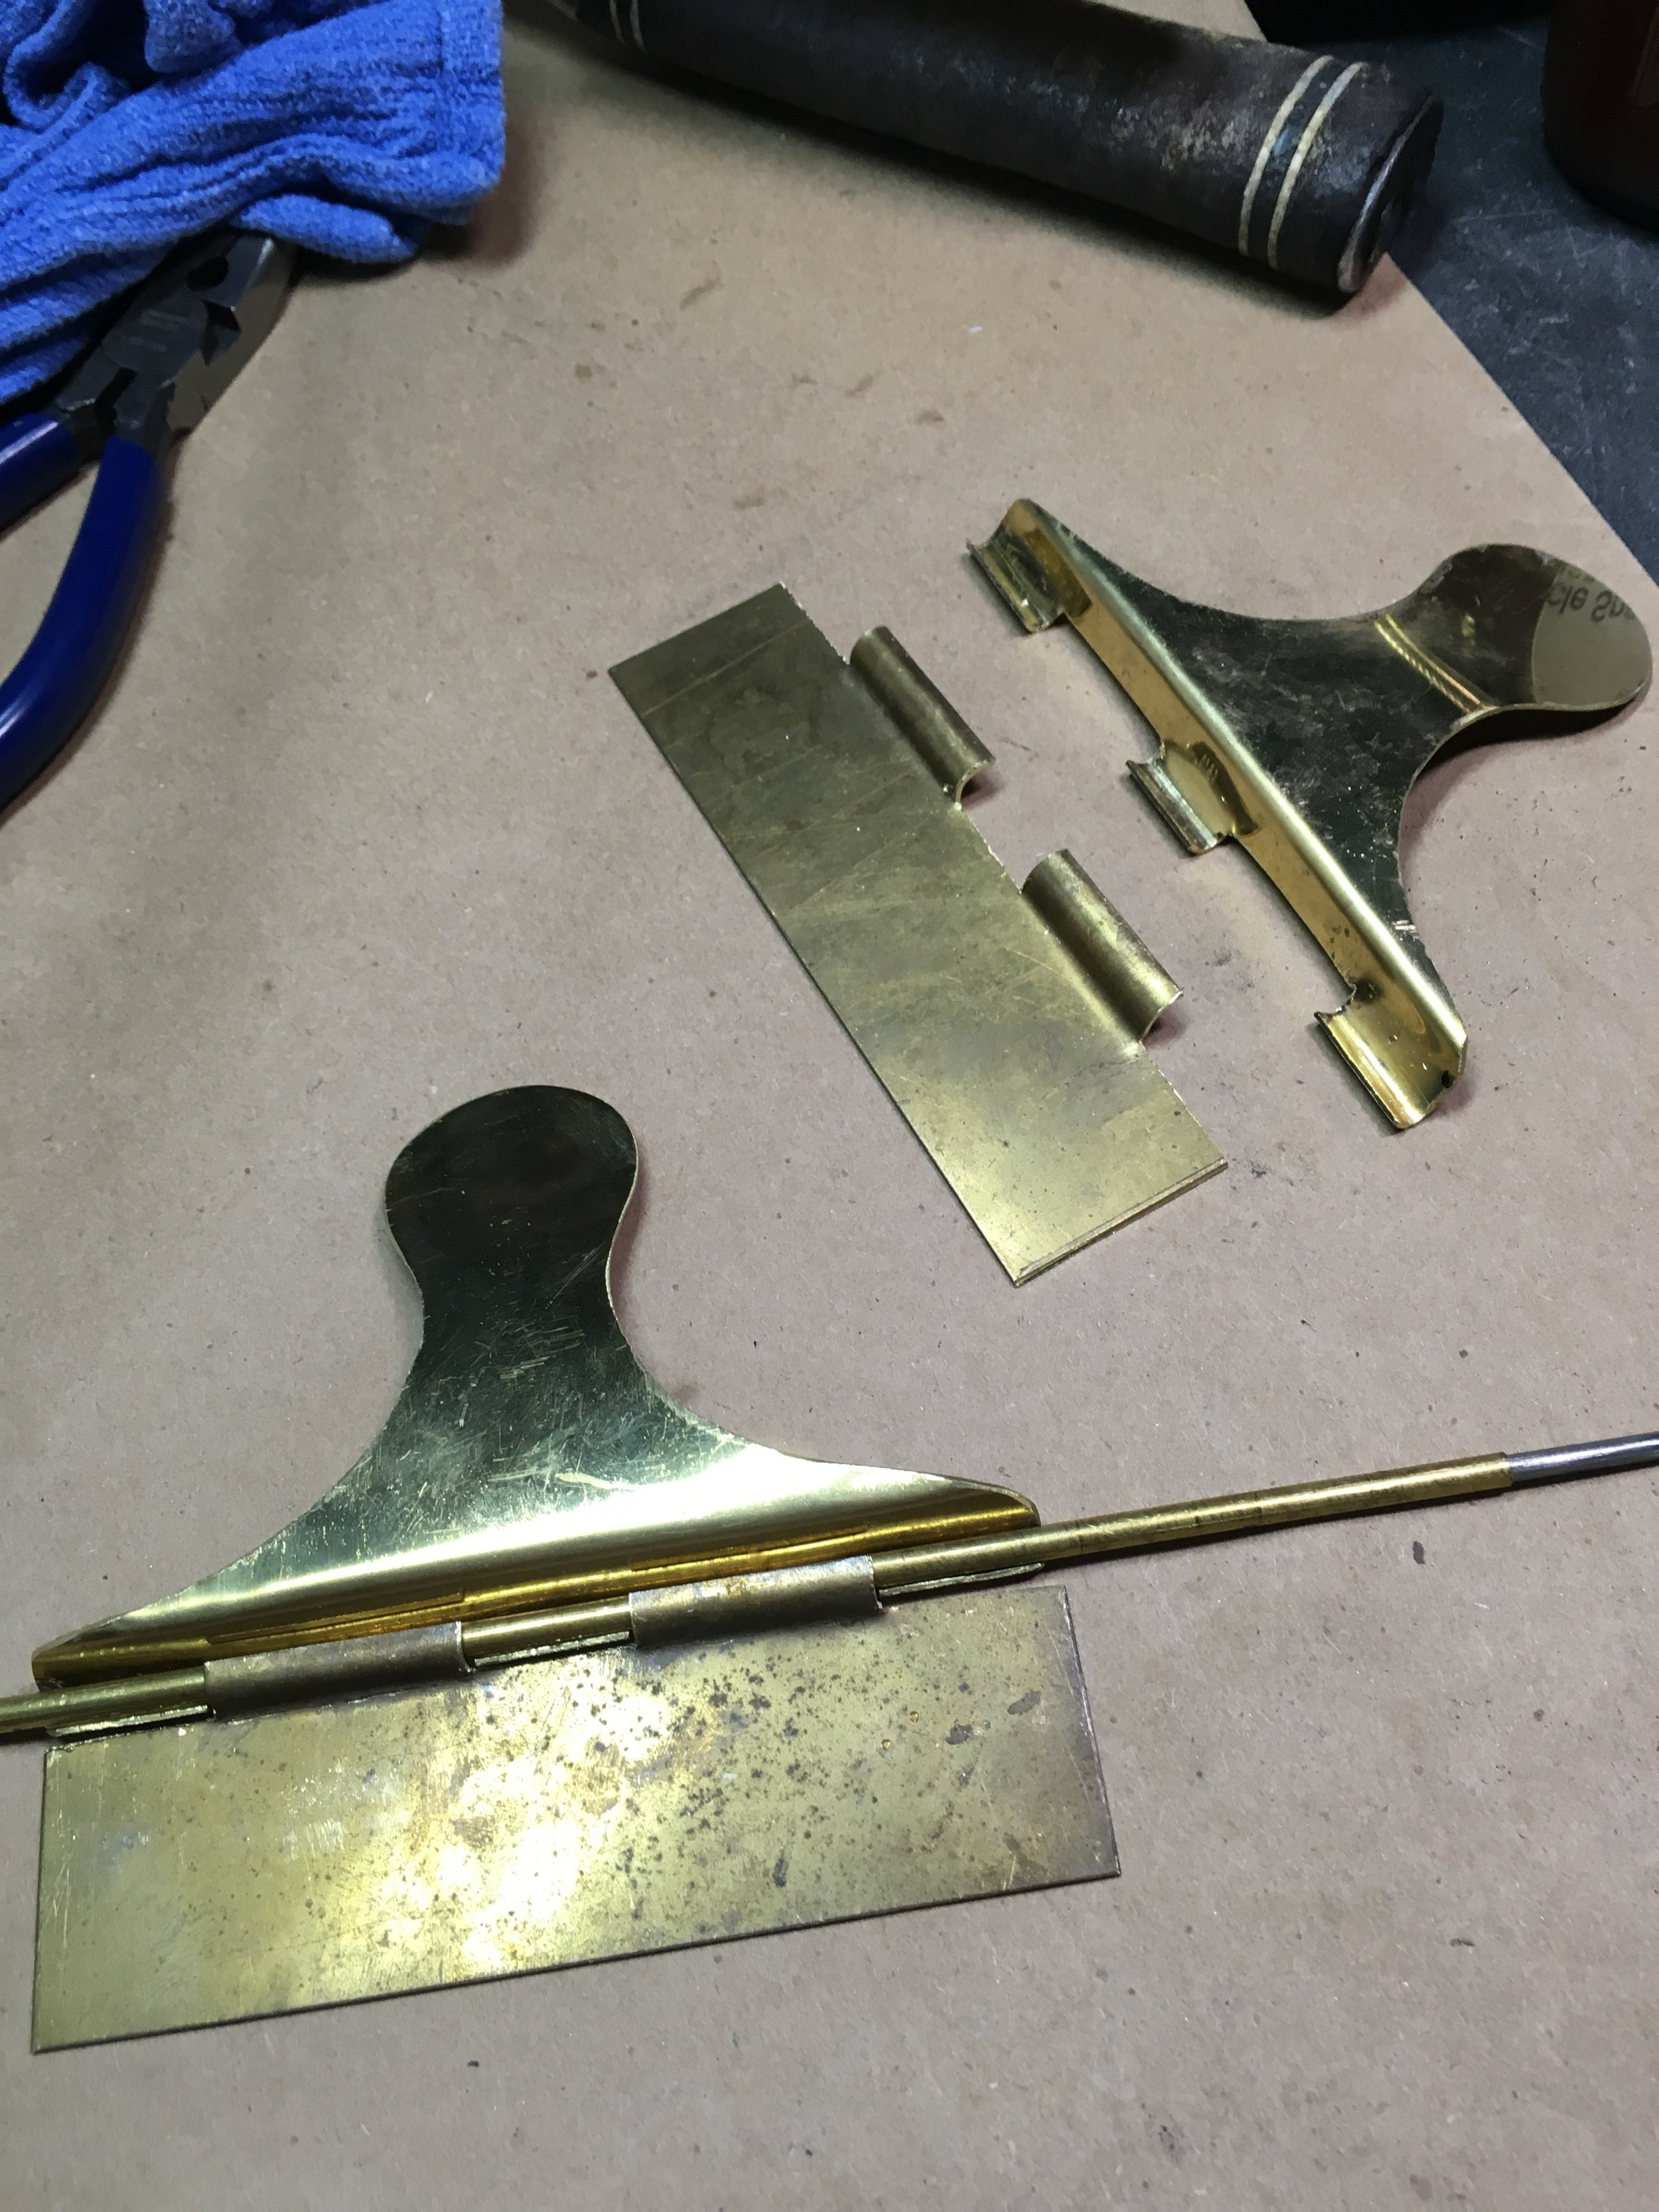 20 gauge brass and some brass tubing is being used to make the hinge for the boxes.